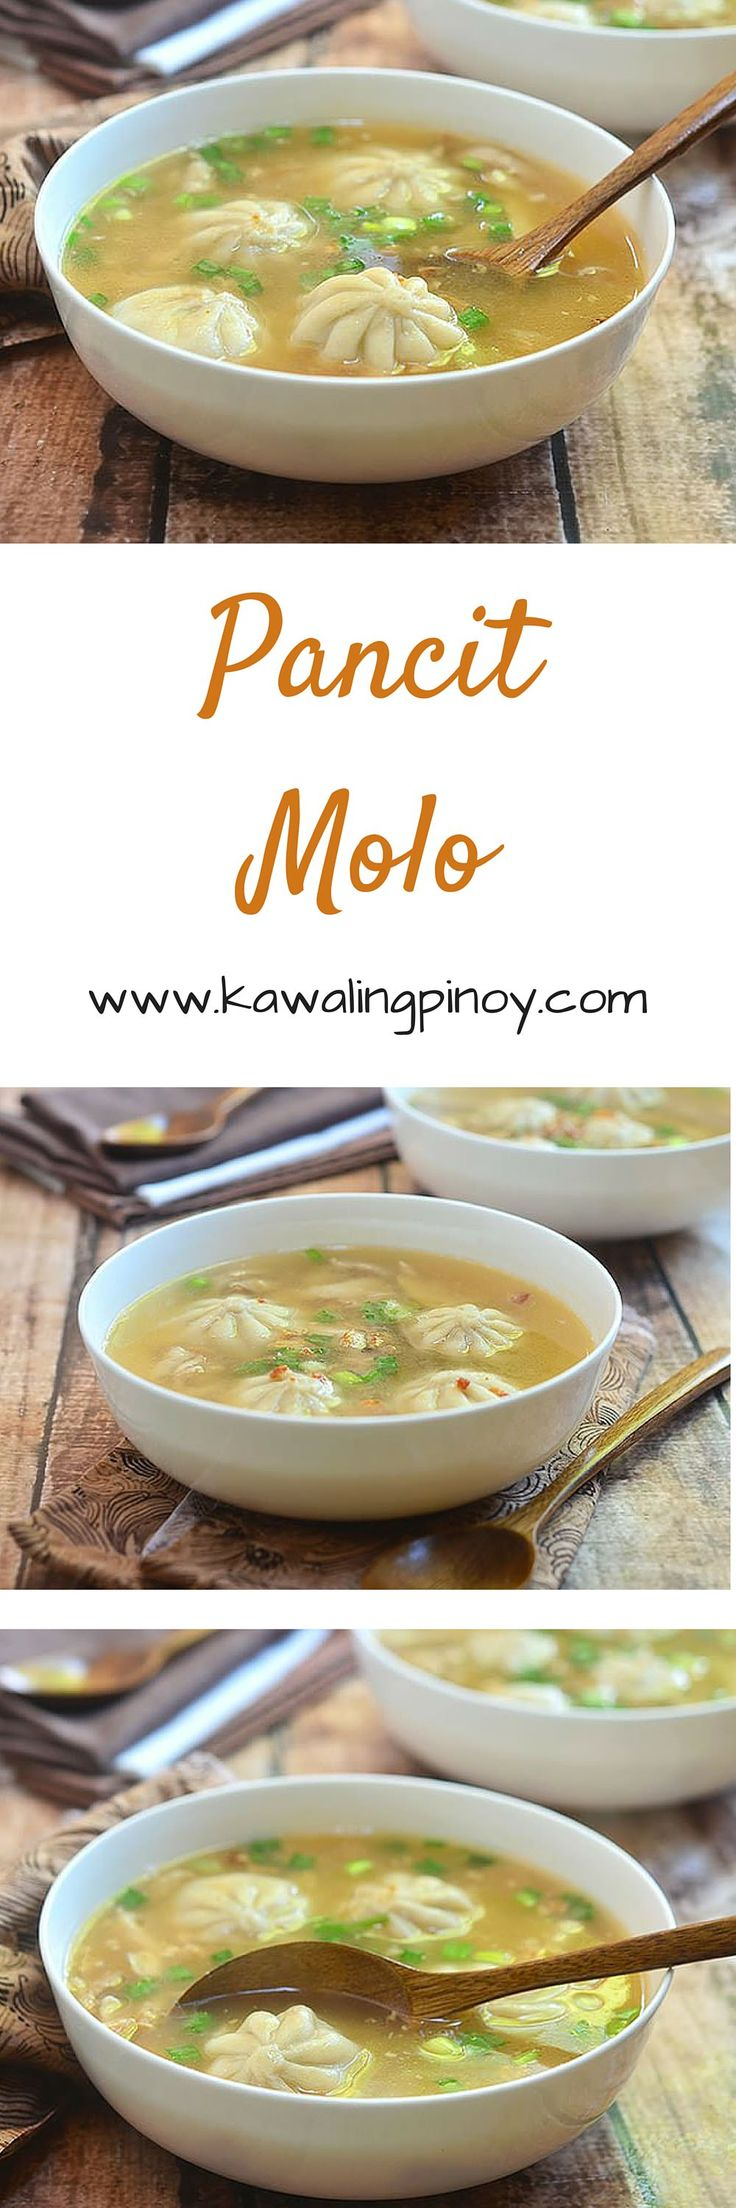 271 best Filipino Kitchen images on Pinterest | Cooking food ...